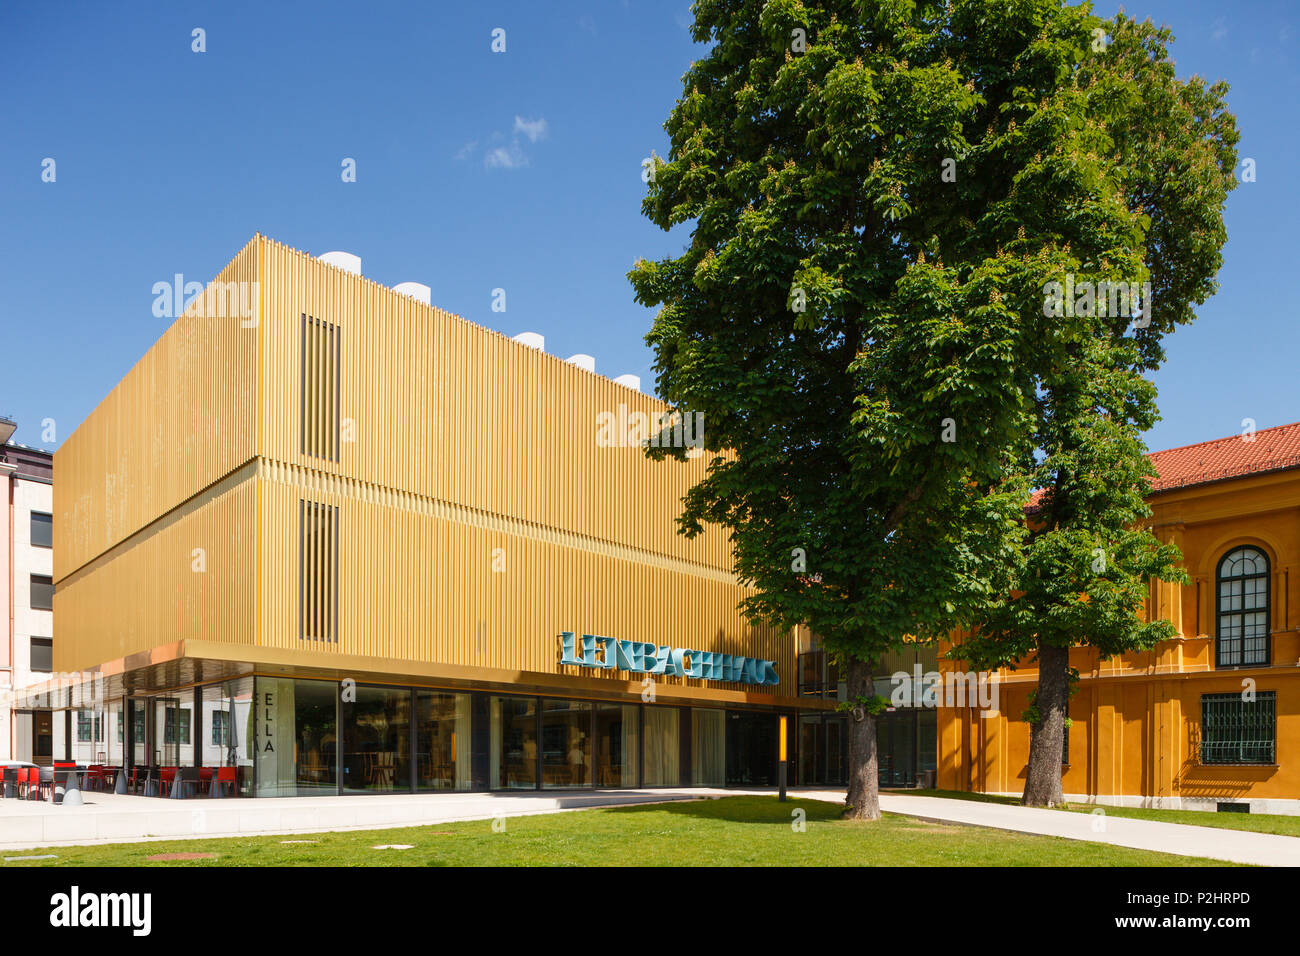 Lehnbachhaus, art Museum, extension of the existing building by architect Norman Foster and Partners, Staedtische Galerie im Leh - Stock Image